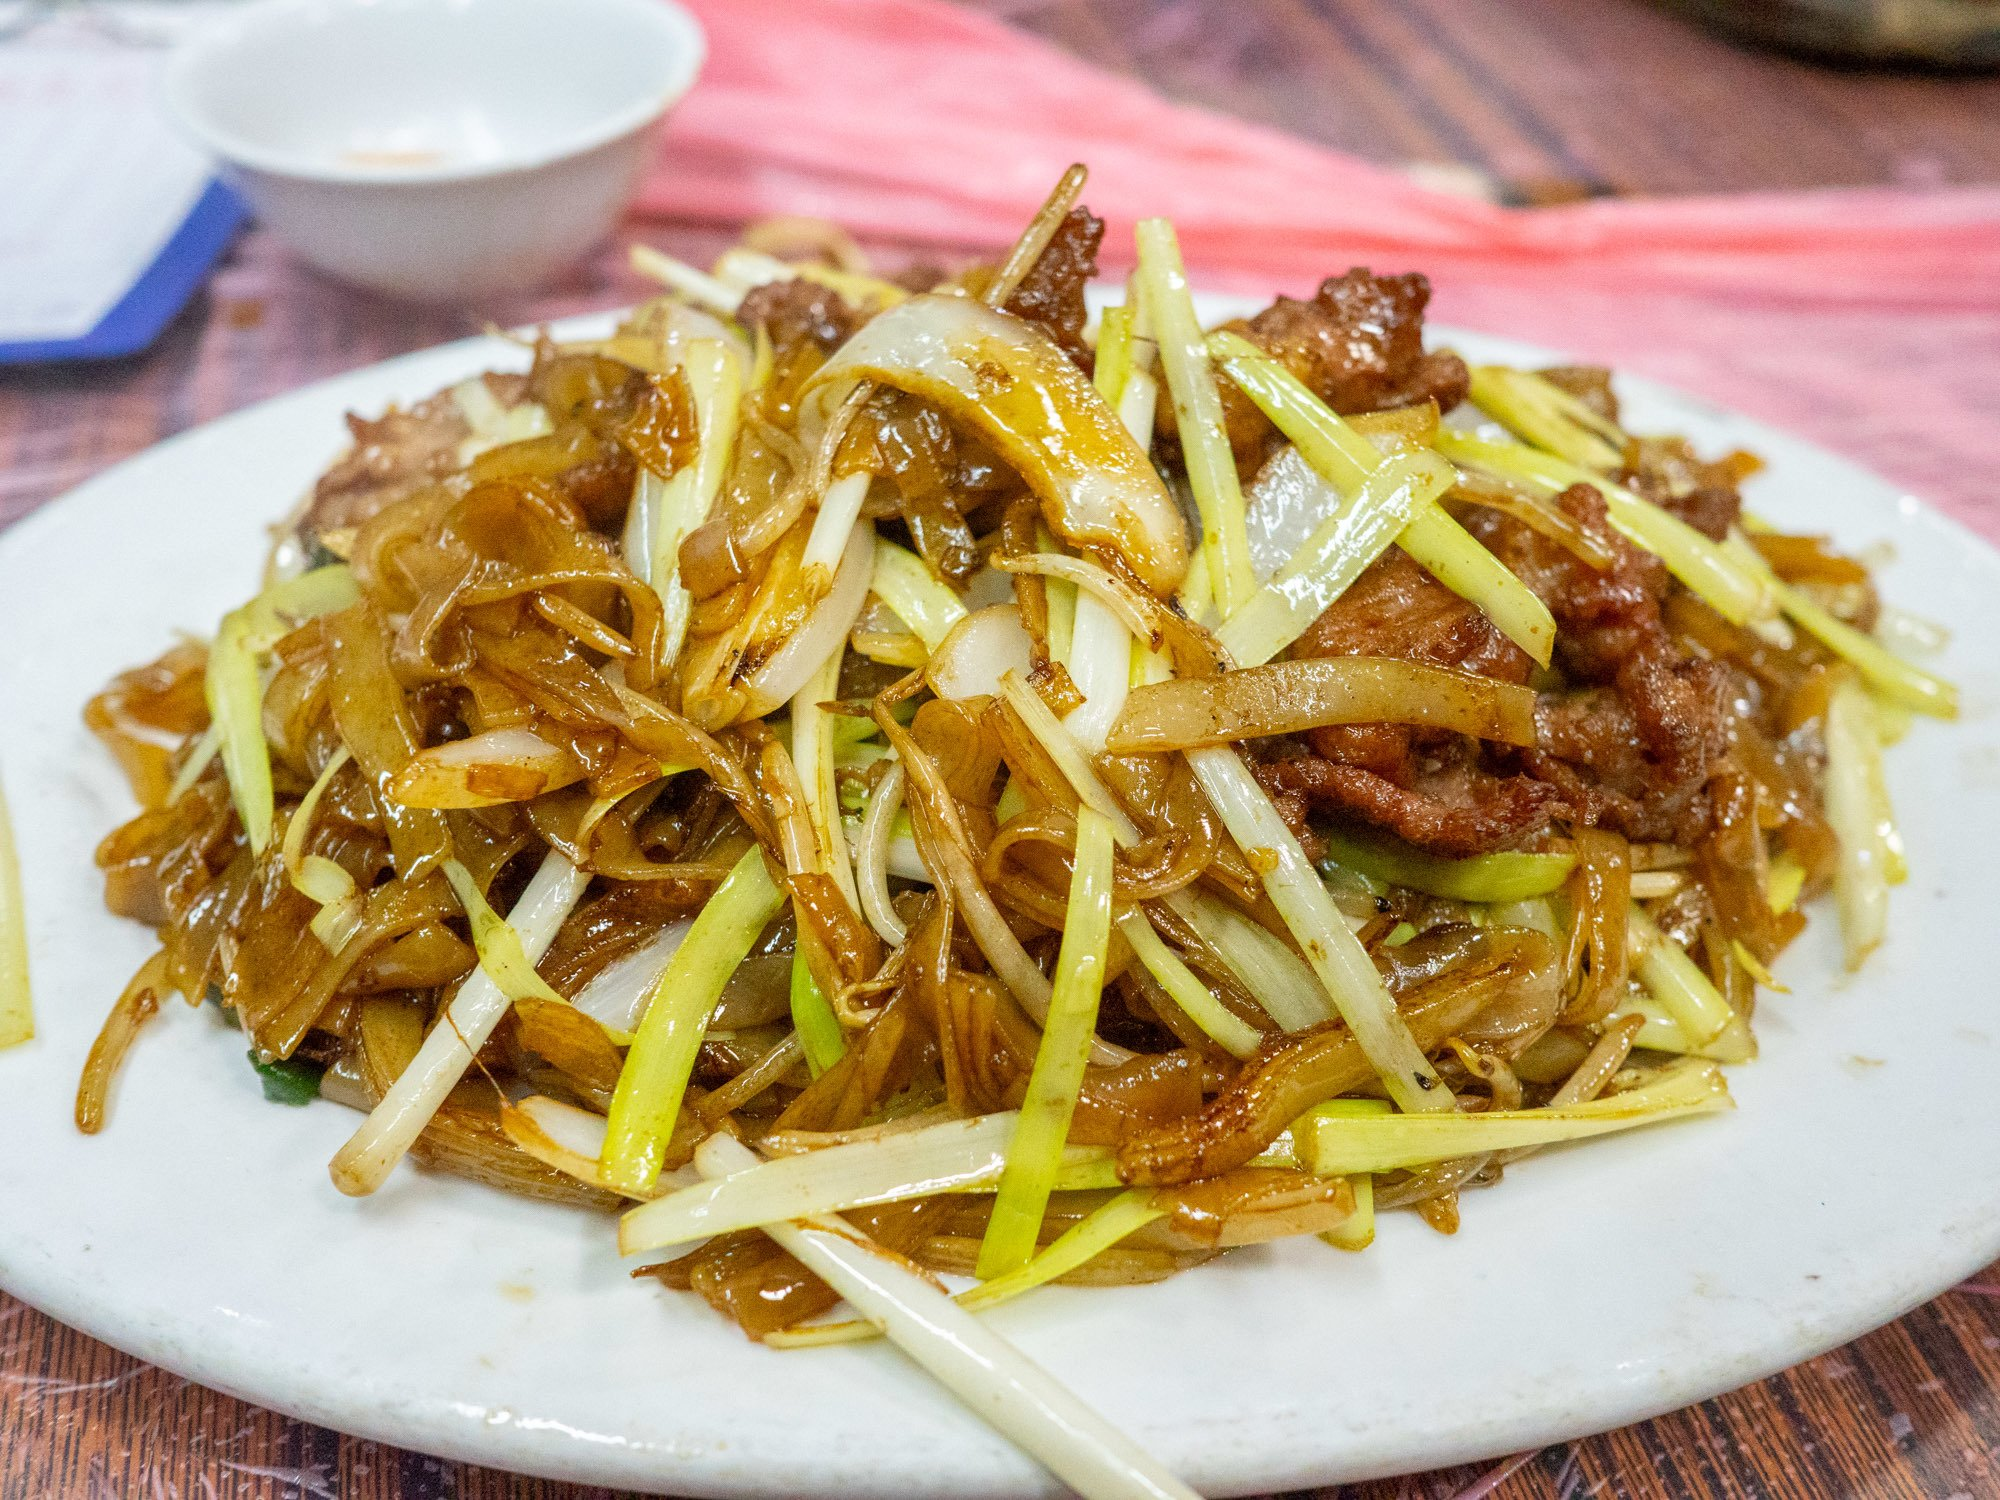 """Fried rice noodles with beef in hong kong, where the chefs have mastered the """"wokhei"""" breath of the wok!"""